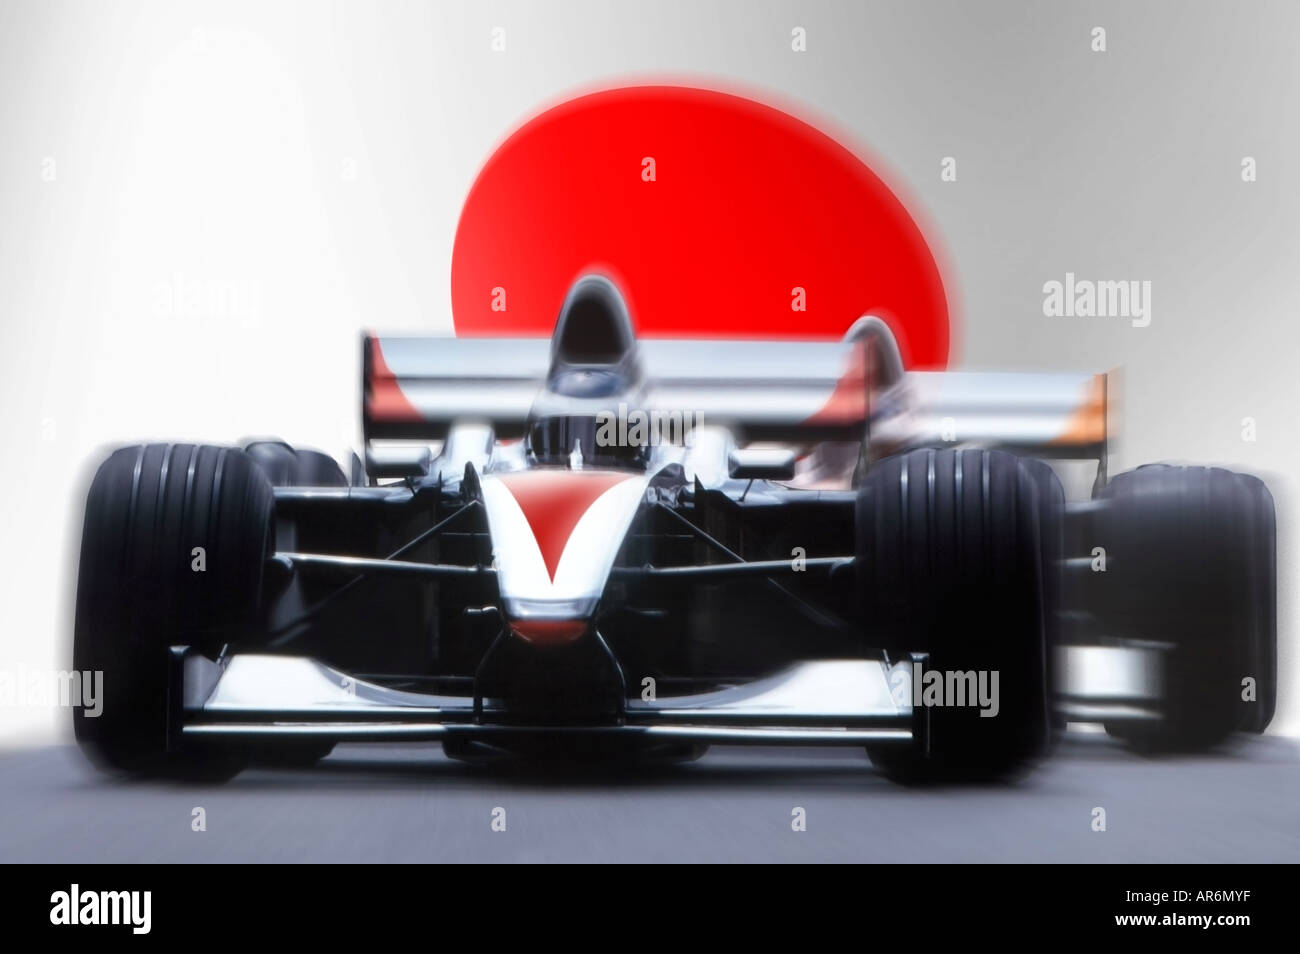 formula racing car in front of national flag Stock Photo